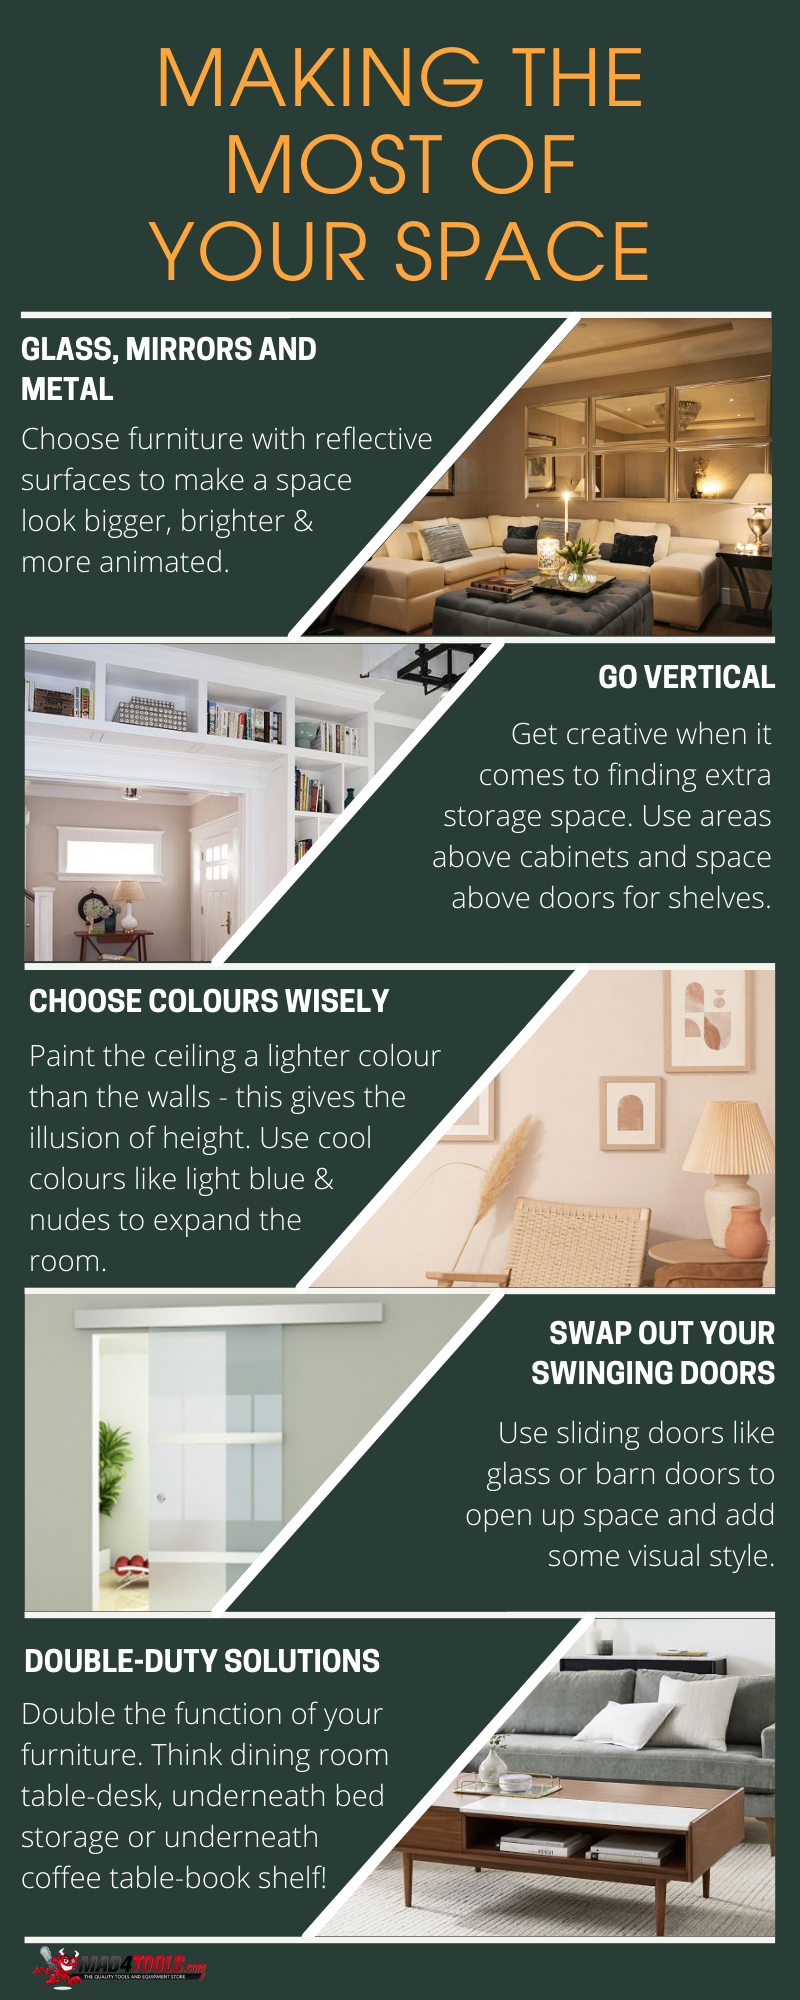 Infographic on tips and tricks for maximising a small space